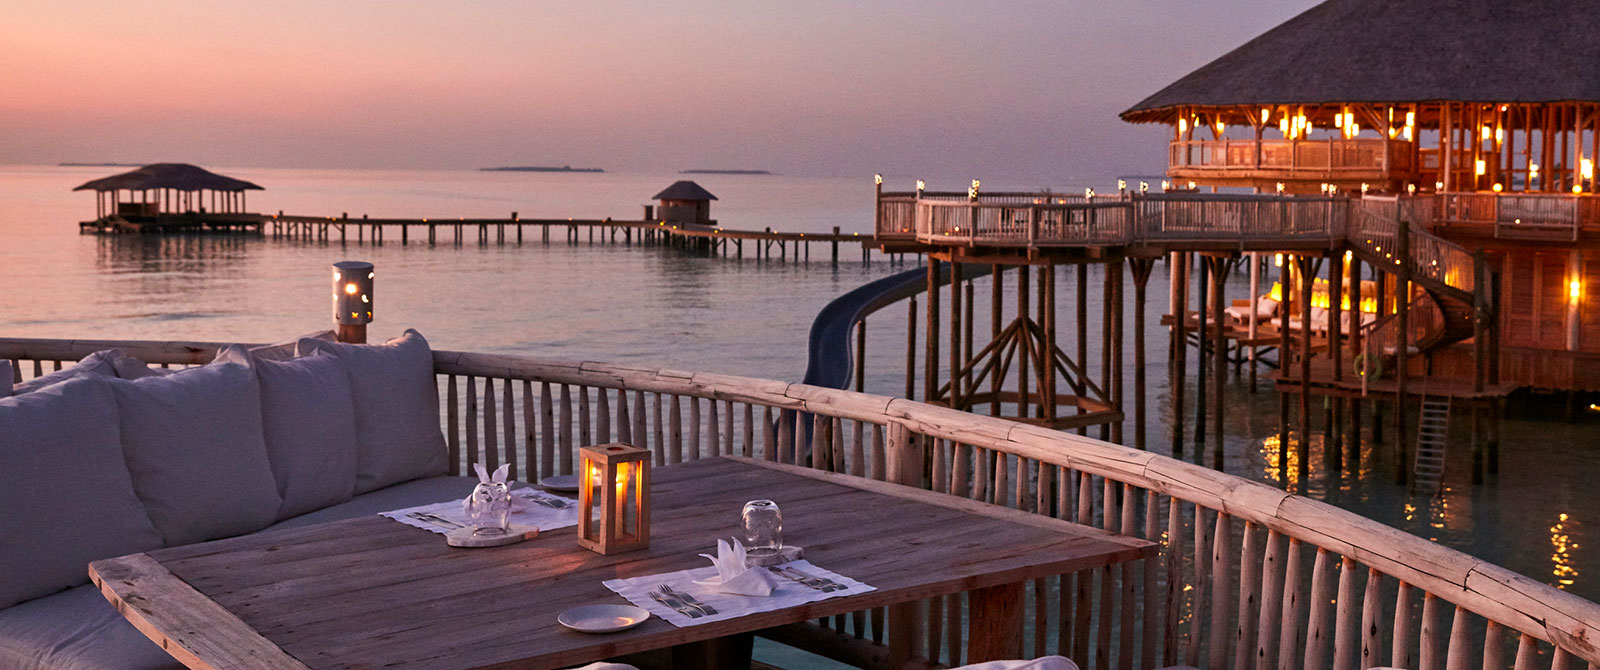 Soneva Jani Resort - So Starstruck Restaurant - Maldives Overwater Bungalow Vacation